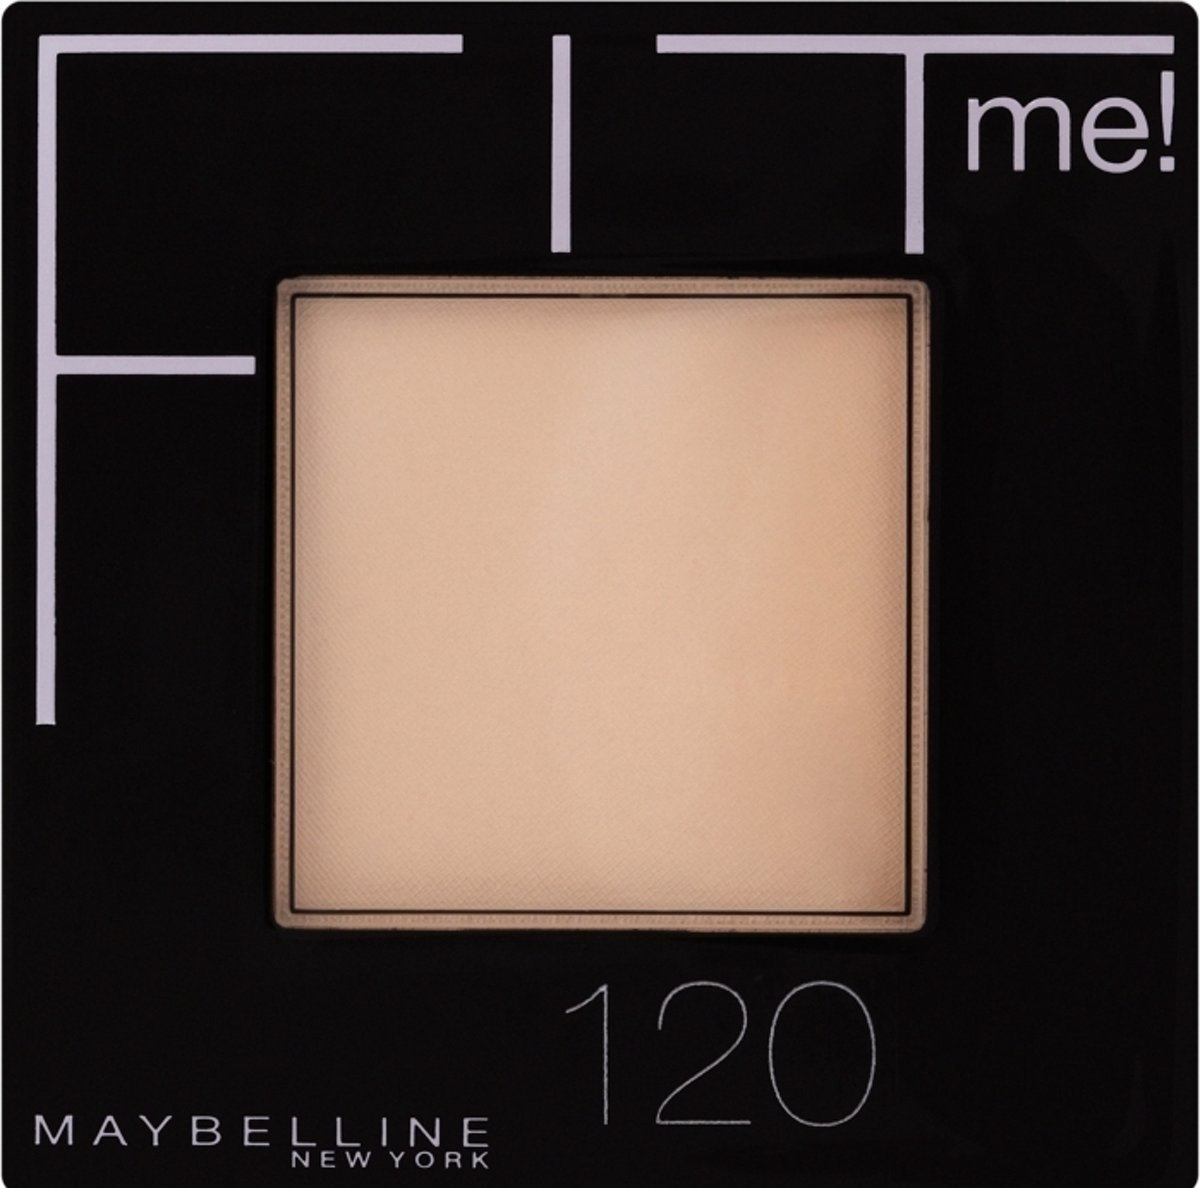 Maybelline Fit Me Pressed Powder - 120 Classic Ivory